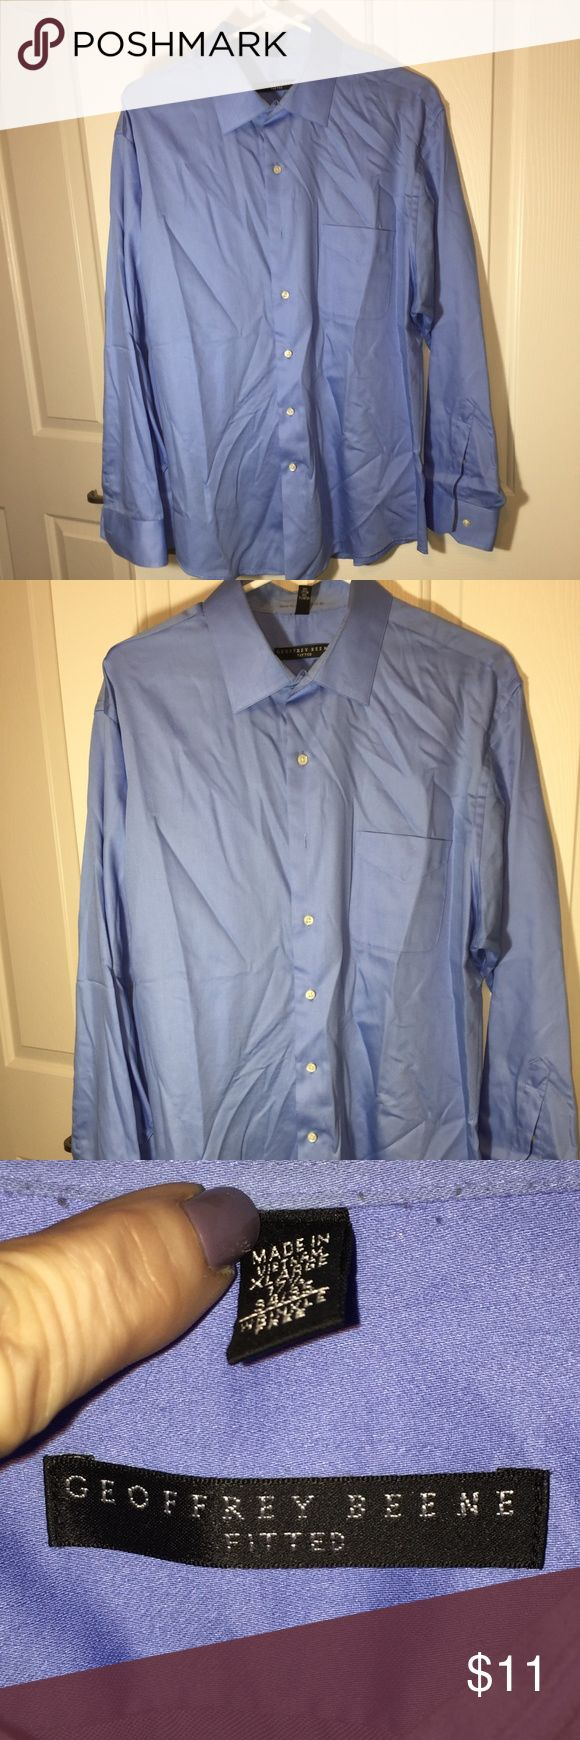 Geoffrey Beene shirt button down BLUE Men's long sleeved button-down shirt Geoffrey Beene. Size XL  17 1/2, 34/35 Blue   55% cotton 45% polyester     Shirt is in good used condition. Button cuff. Only mark on shirt is my last name MENDELSON on back of collar from dry cleaner. Geoffrey Beene Shirts Casual Button Down Shirts